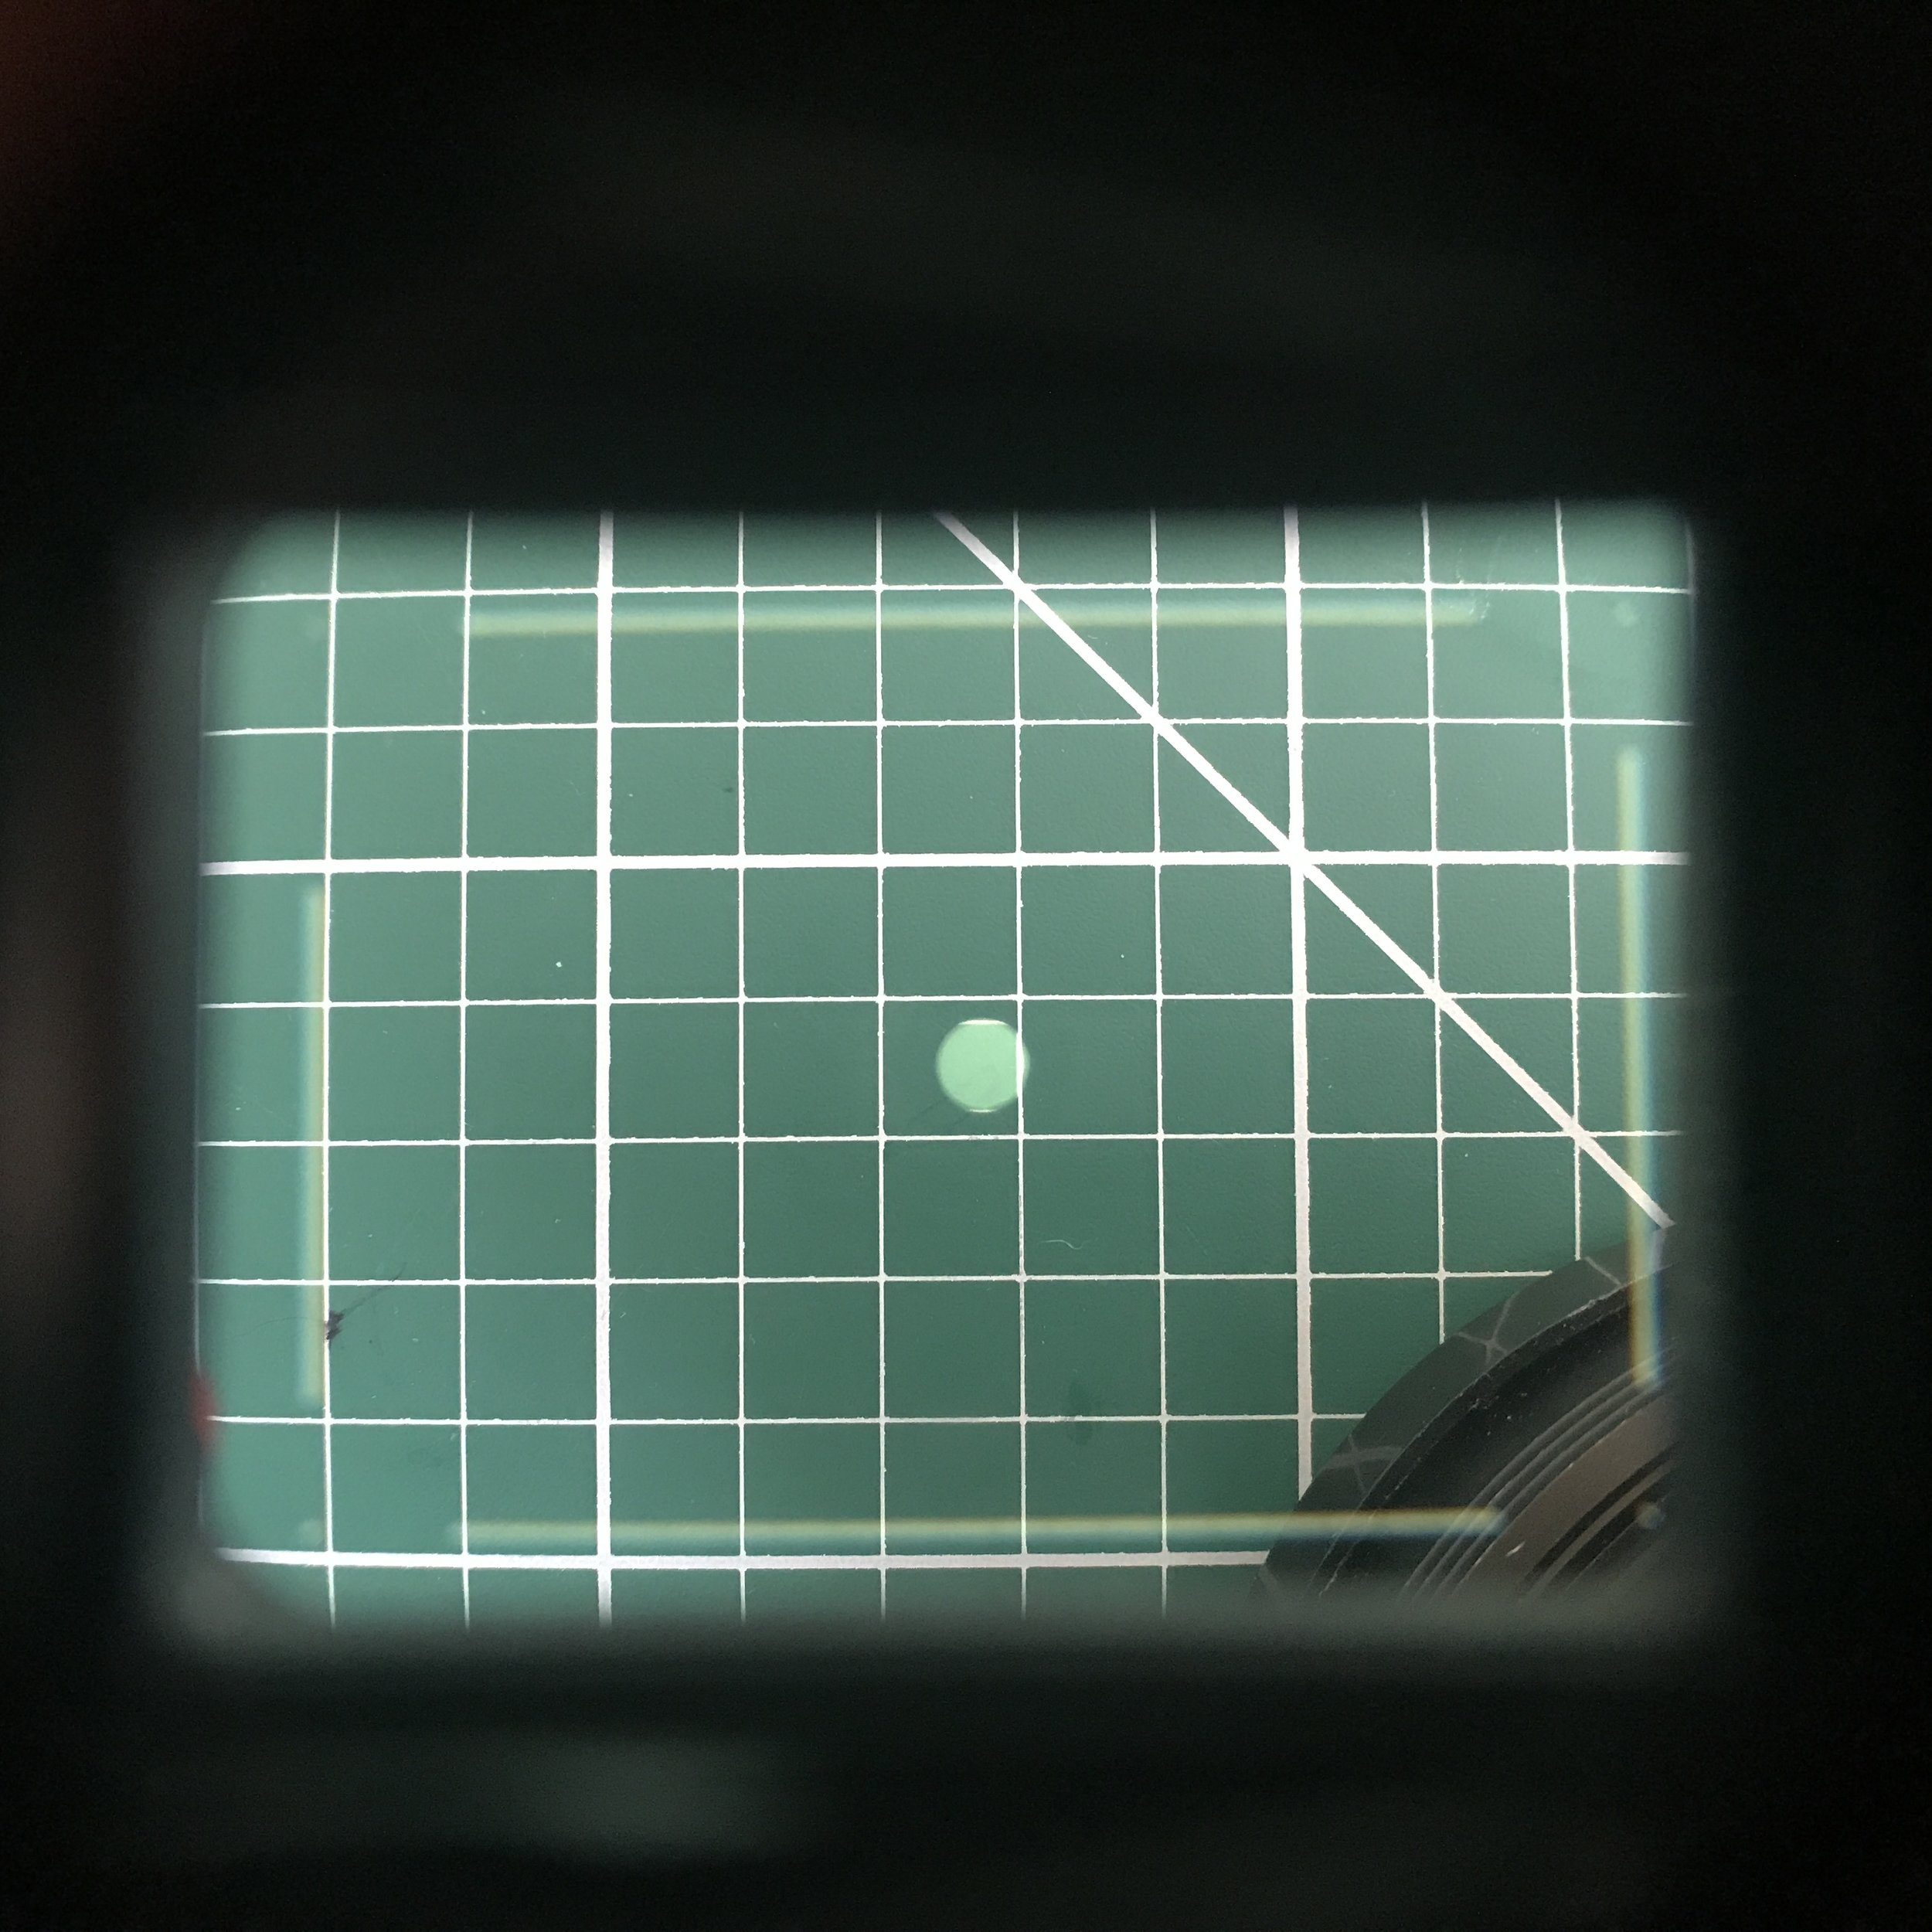 This is the viewfinder of the Fuji GW690iii. You can see the small size of the range finder focusing circle as well as the lens blocking the bottom right corner of the frame. This can make life tricky if you want any leading lines going in or out of that corner!